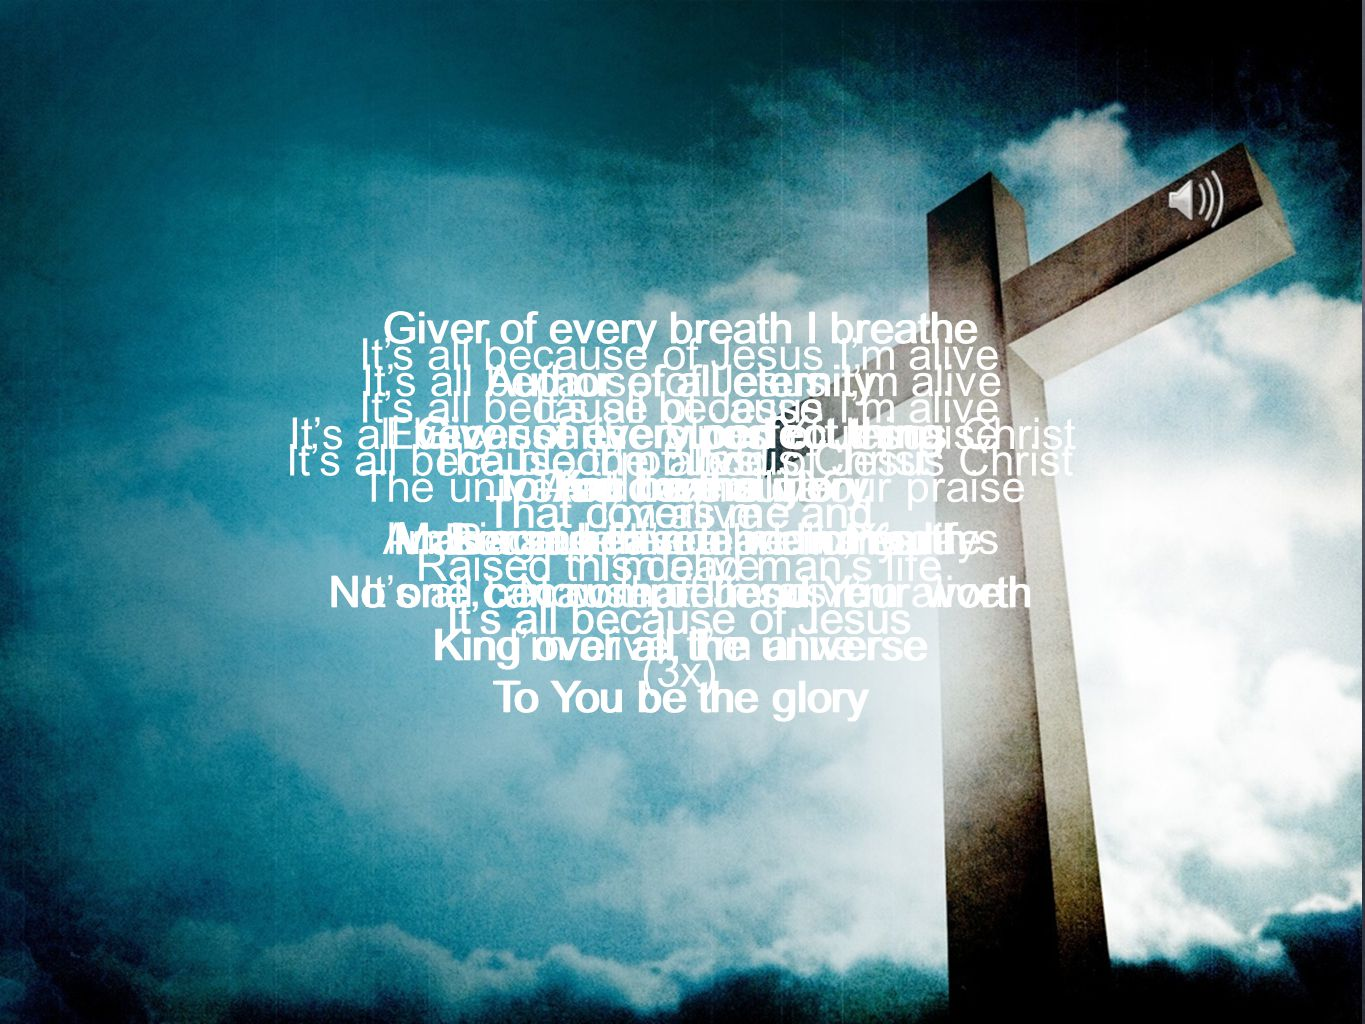 Giver of every breath I breathe Author of all eternity Giver of every perfect thing To You be the glory Maker of heaven and of earth No one can compre